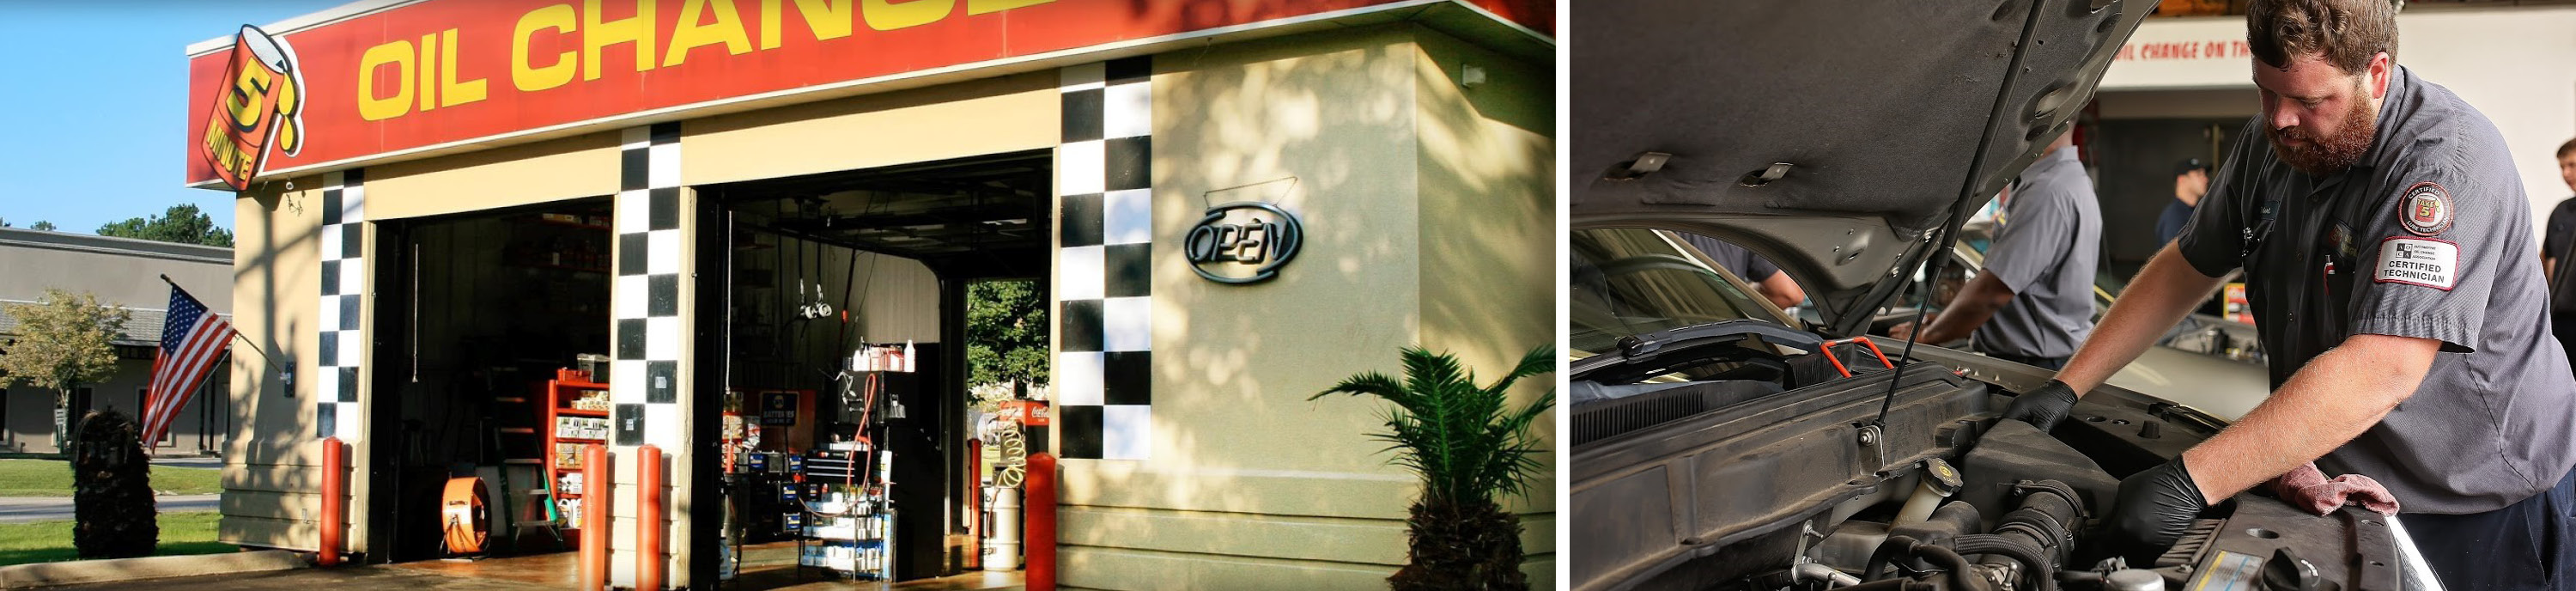 Left: exterior of Take5 location; right: tech changing air filter.